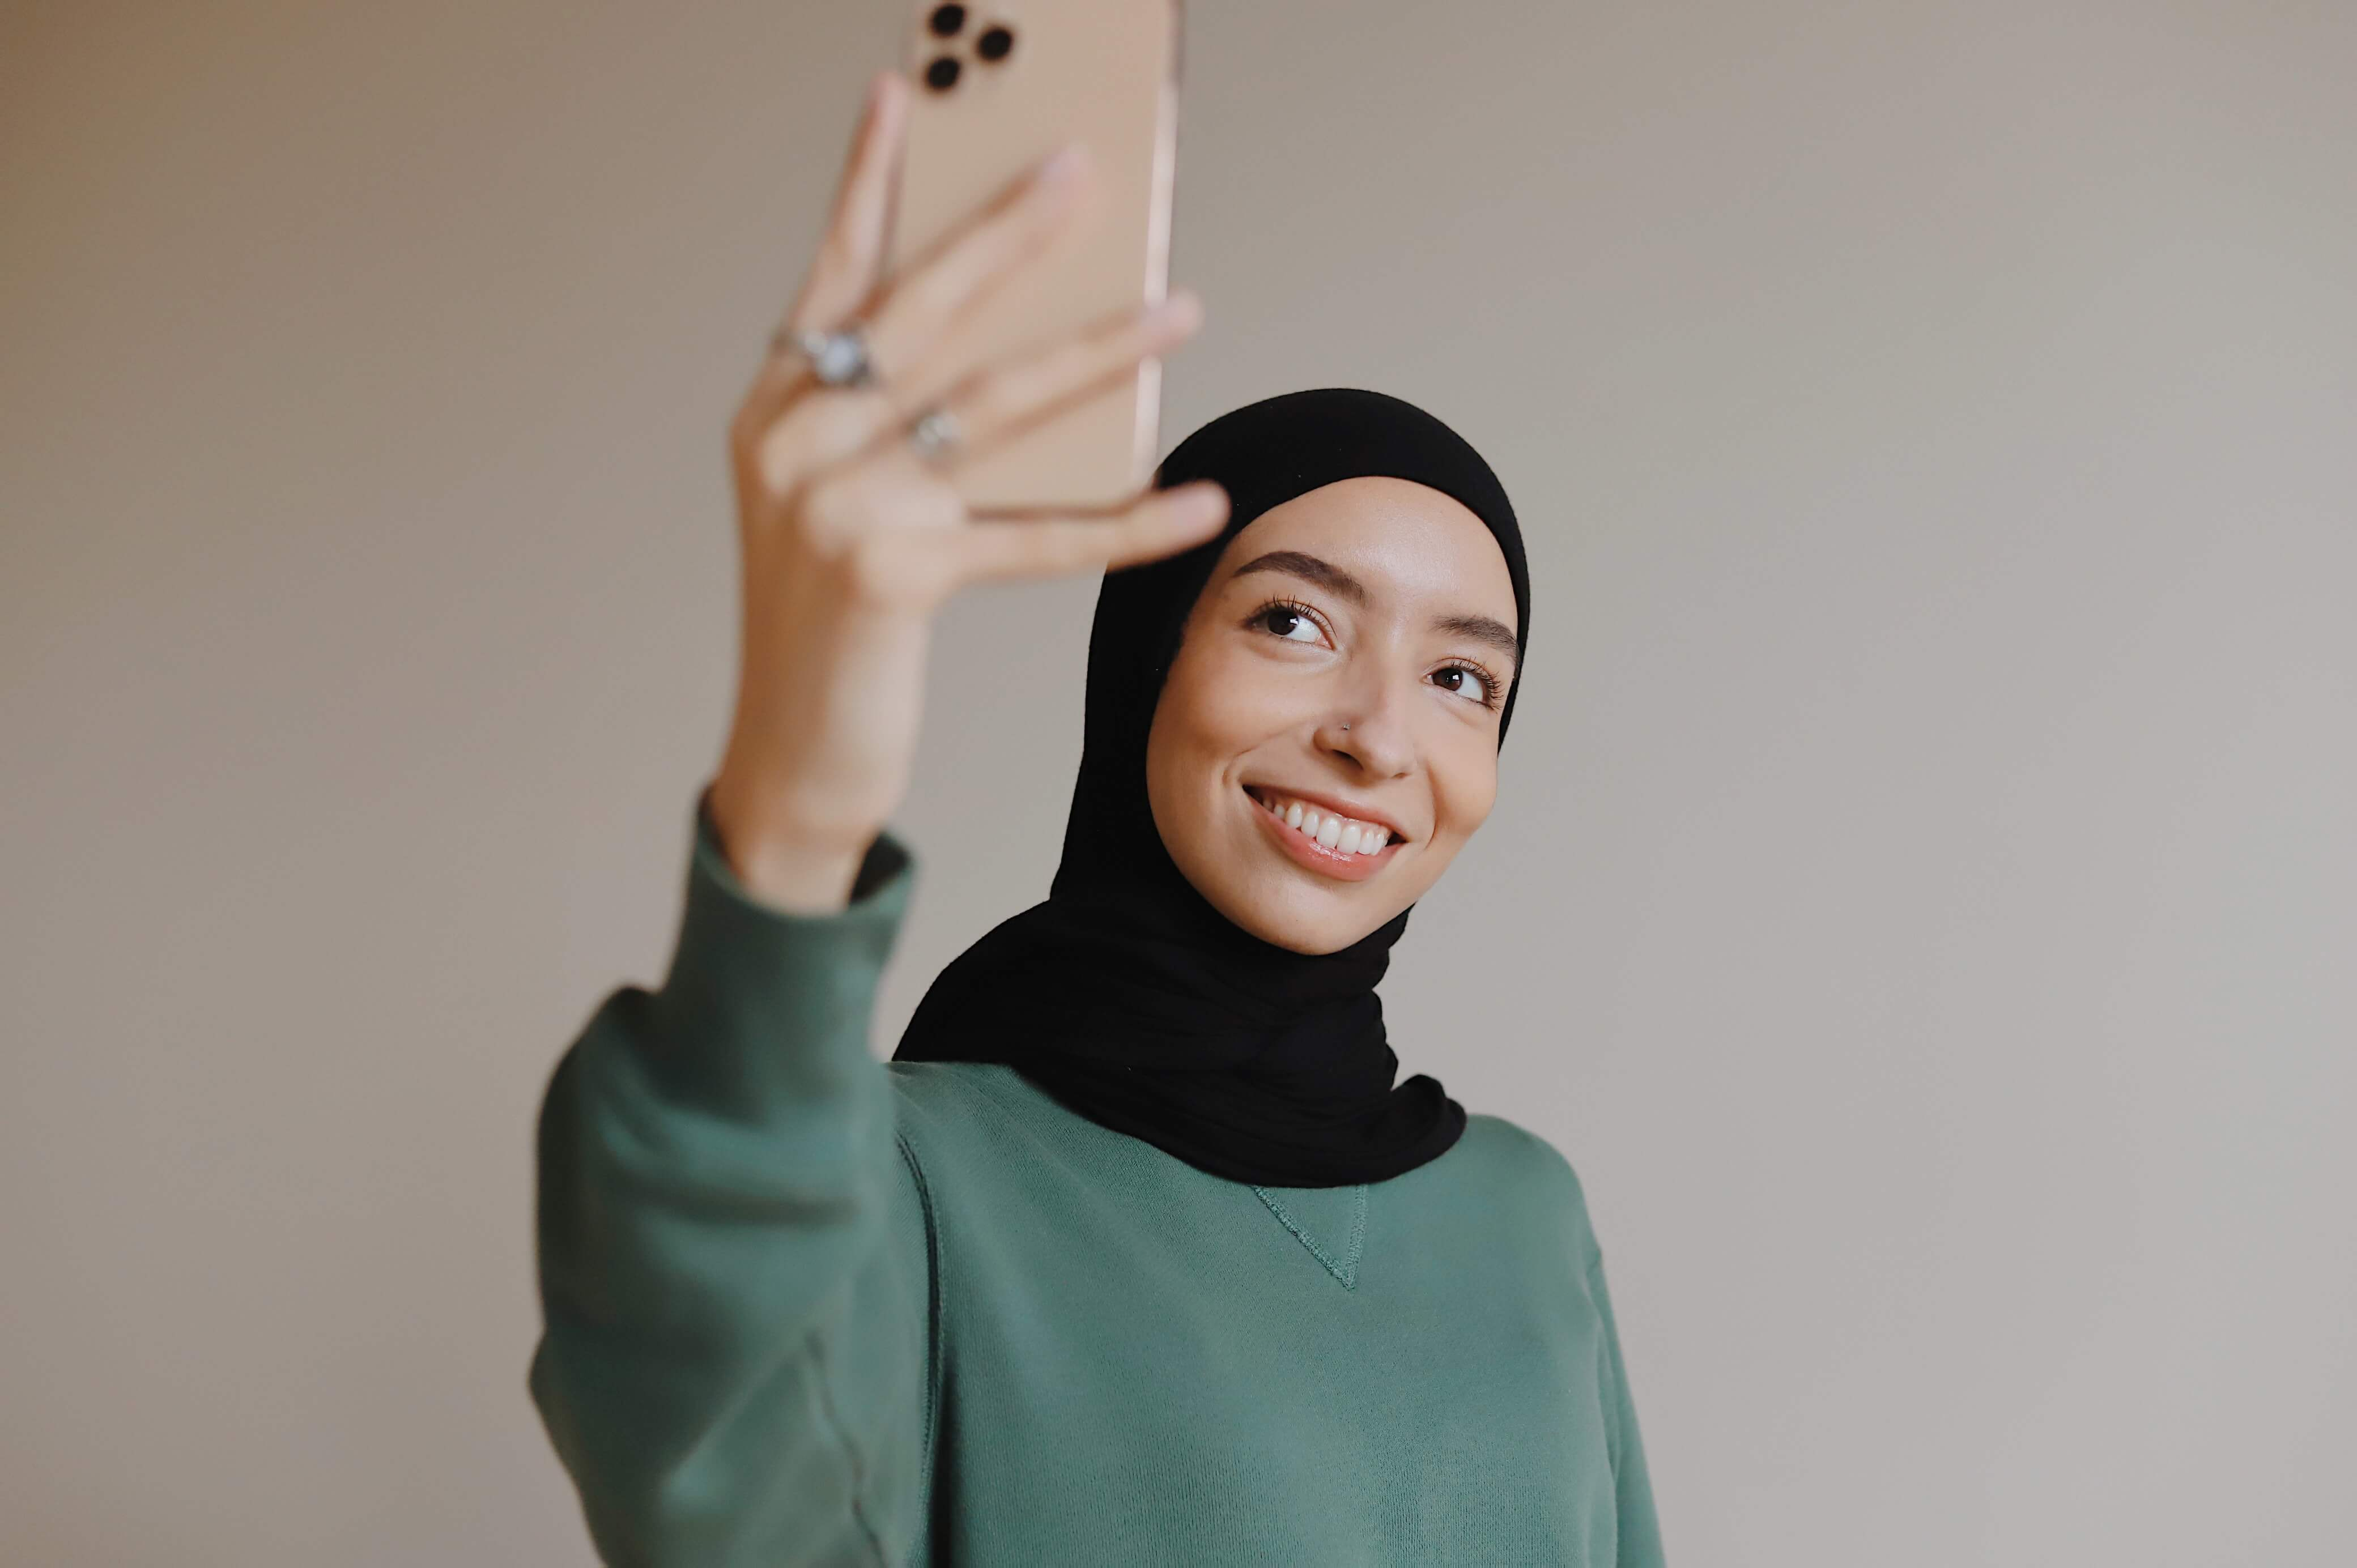 An influencer wearing a hijab takes a selfie.